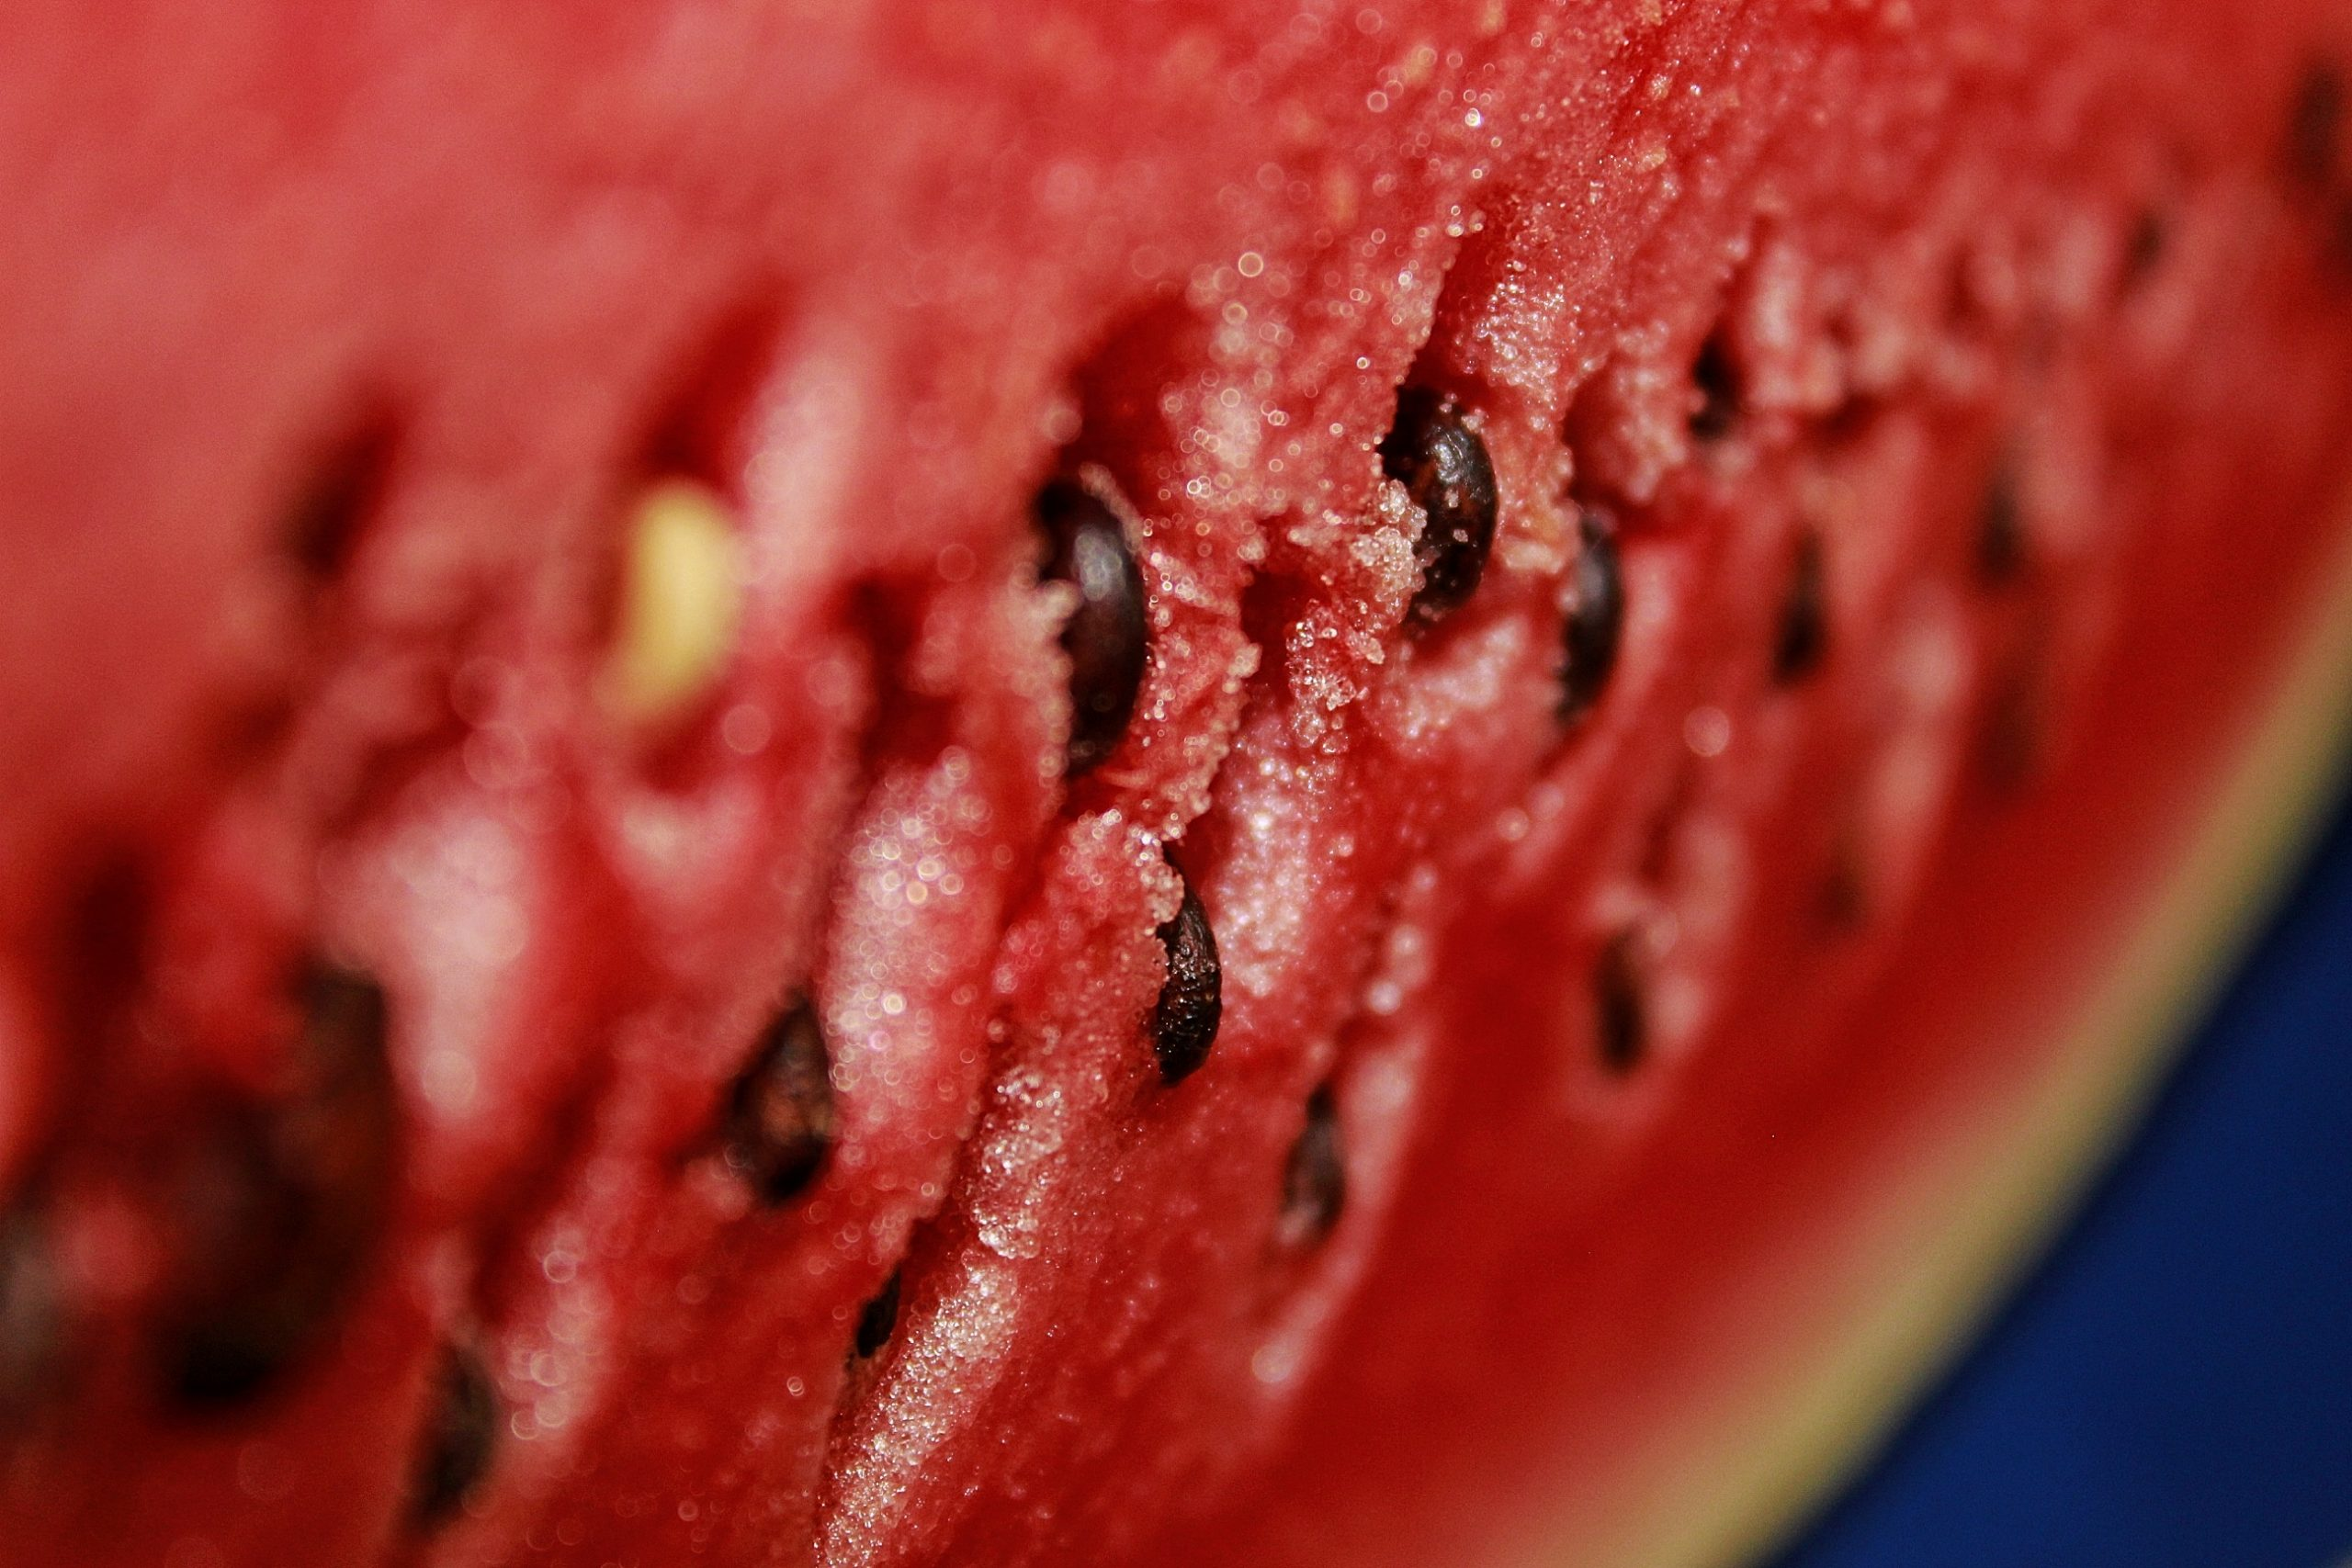 Closeup of a watermelon